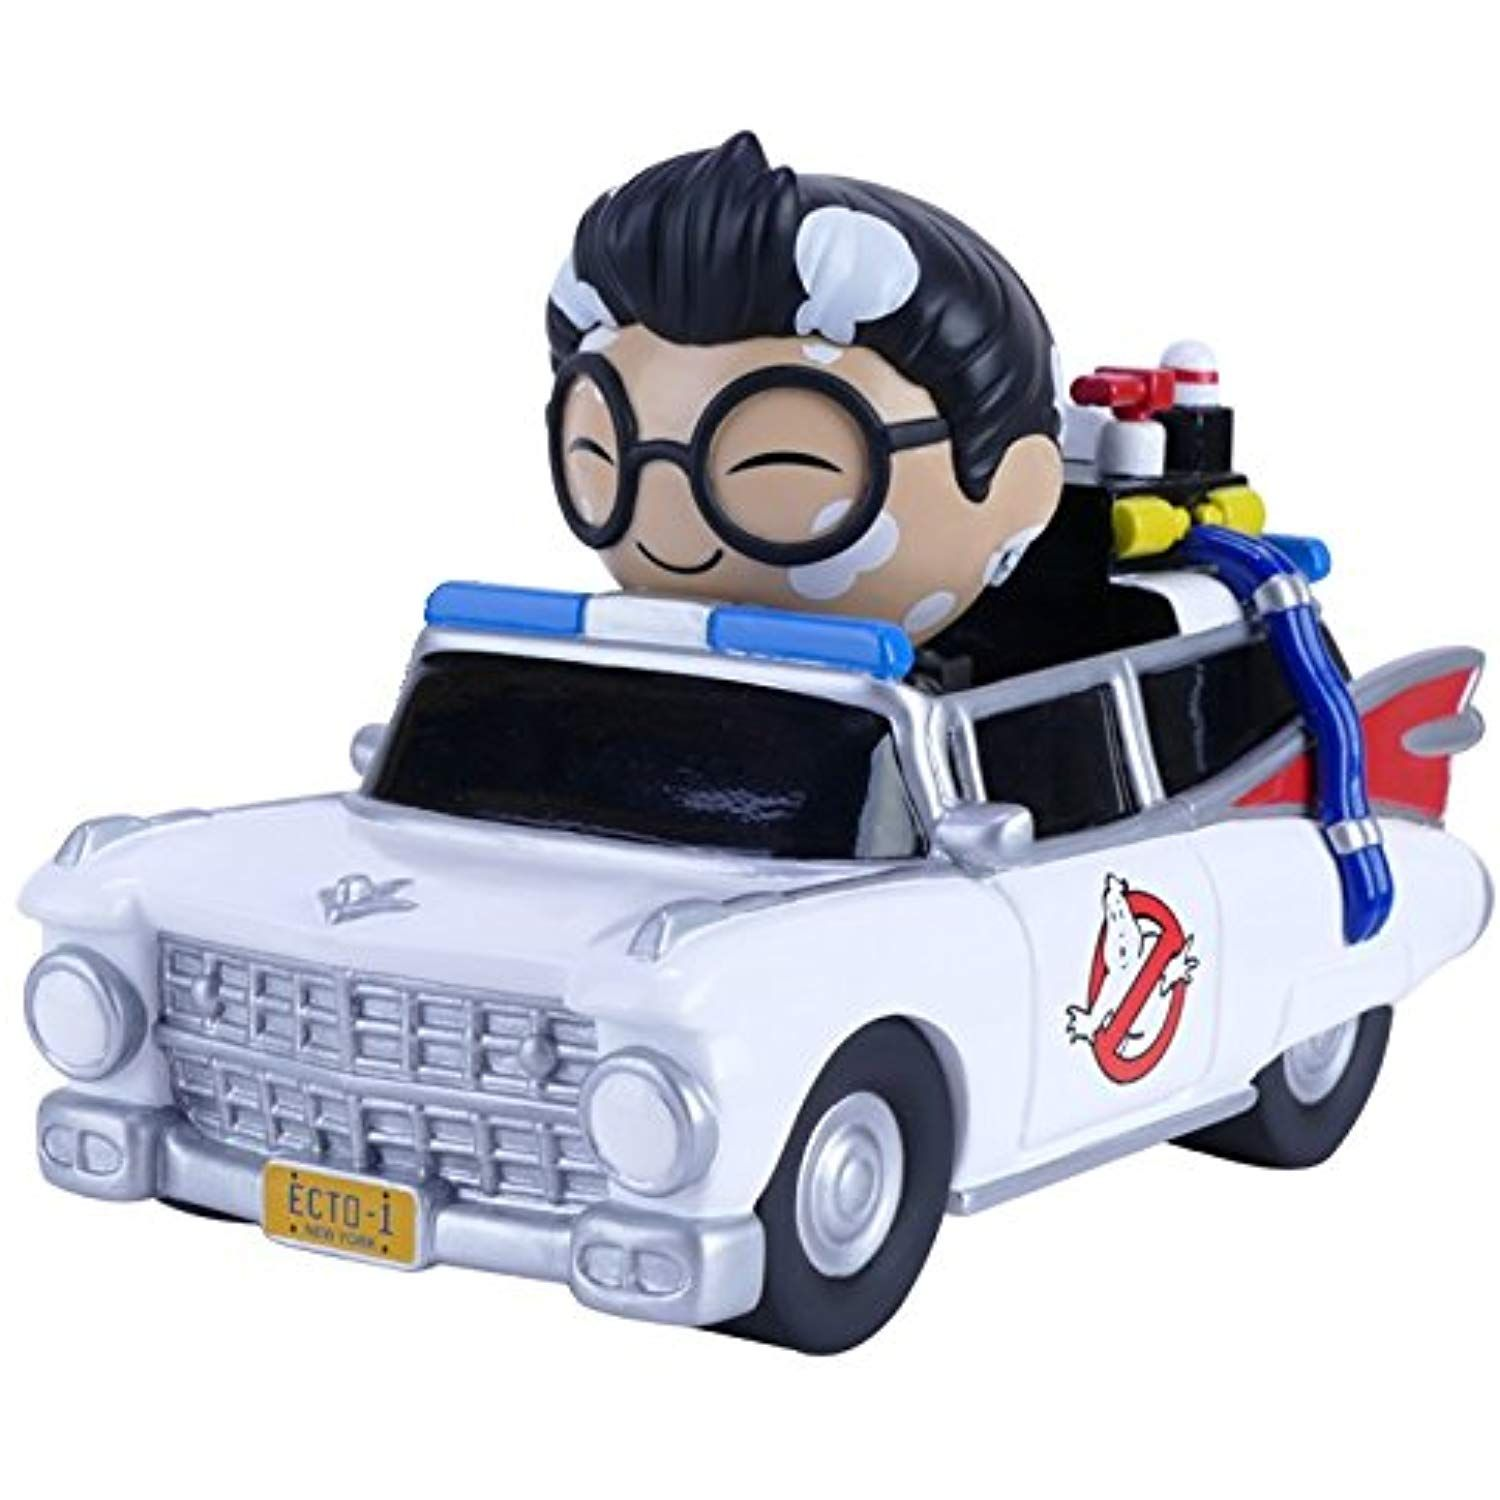 Ghostbusters toys car  Funko Dorbz Ridez Ghostbusters Vehicle  Ecto ueueue Read more